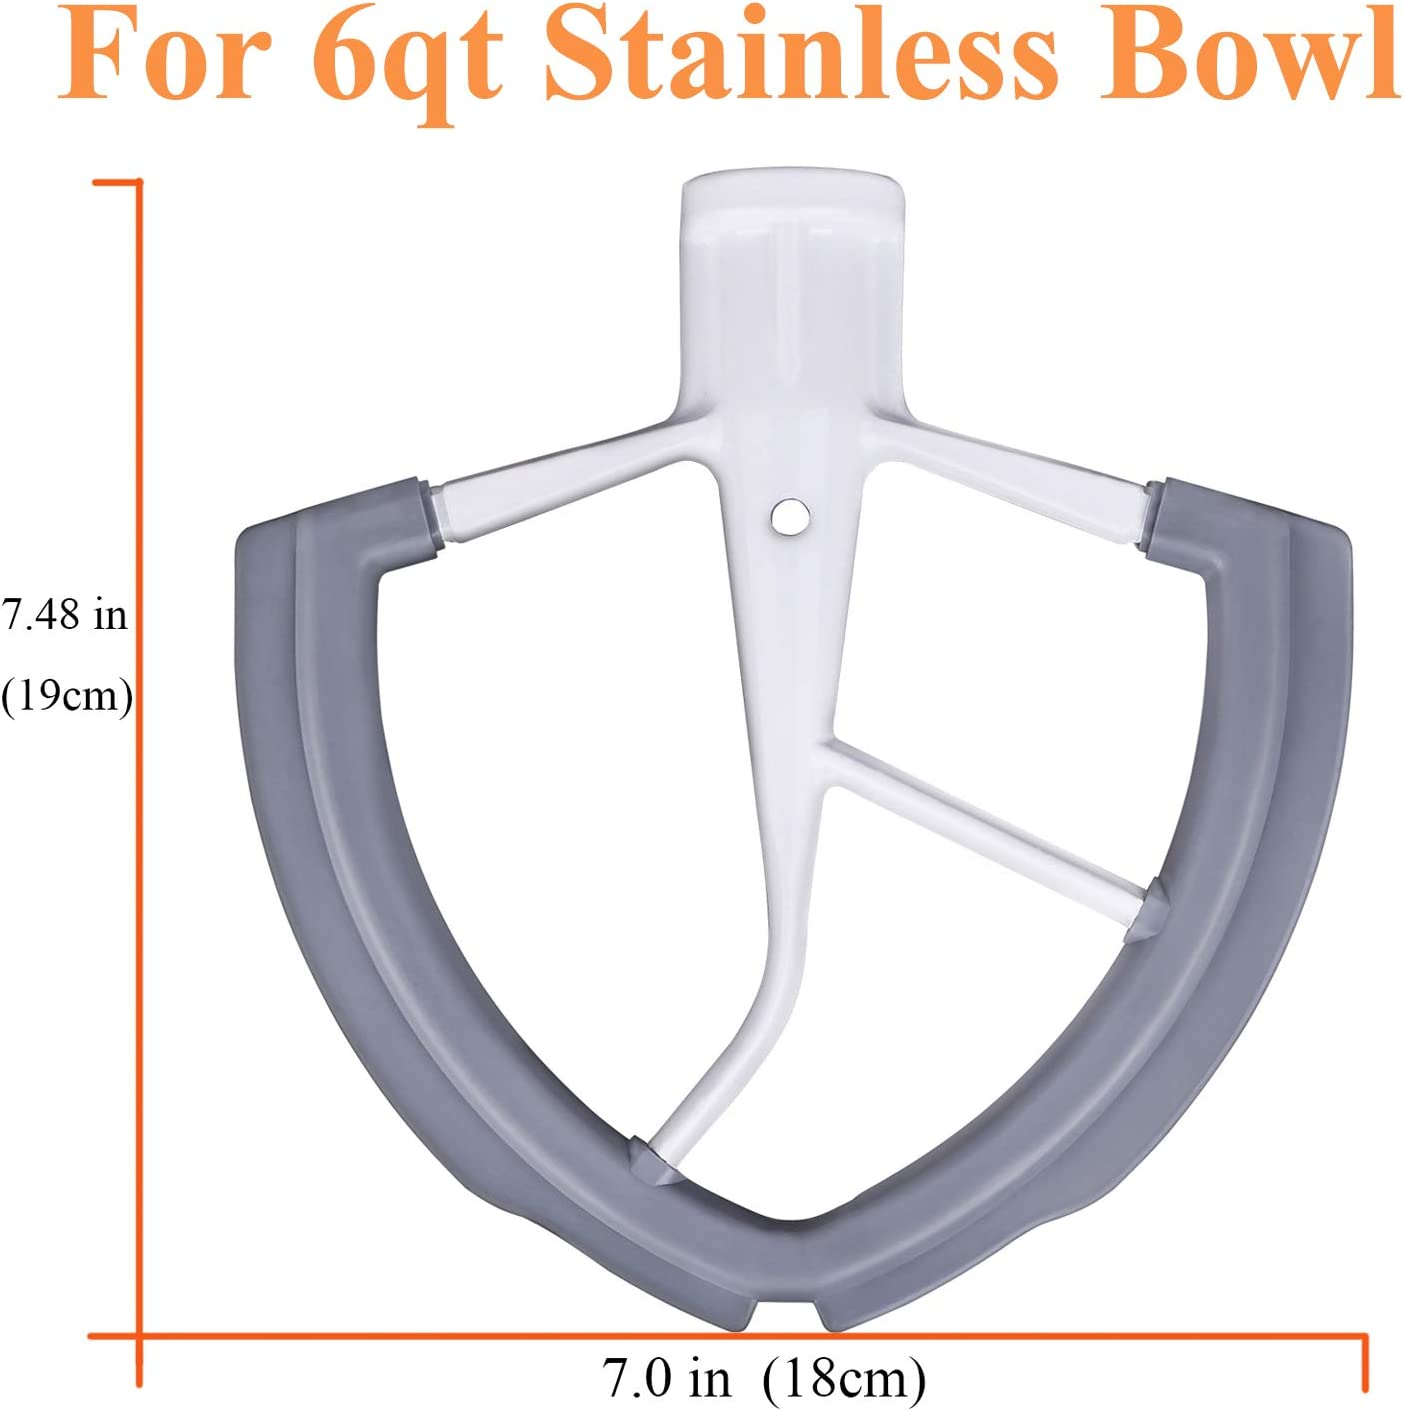 Flat Beater with Silicone Edges 4.5-5 QT Flex Edge Beater for KitchenAid Tilt-Head Stand Mixer for 4.5-5 Quart Bowls Grey